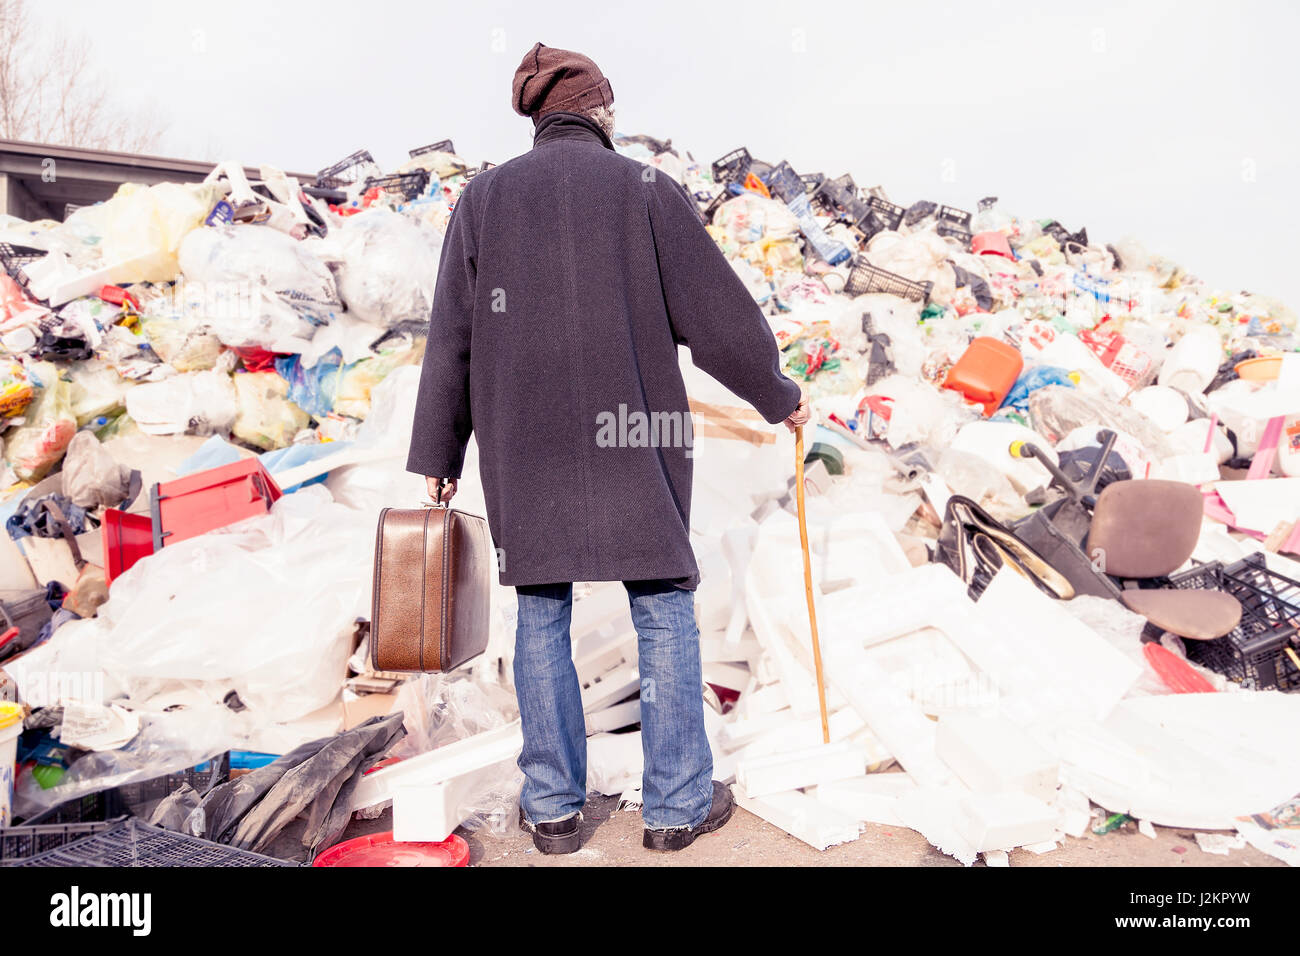 homeless standing in front of a plastic mountain - Stock Image